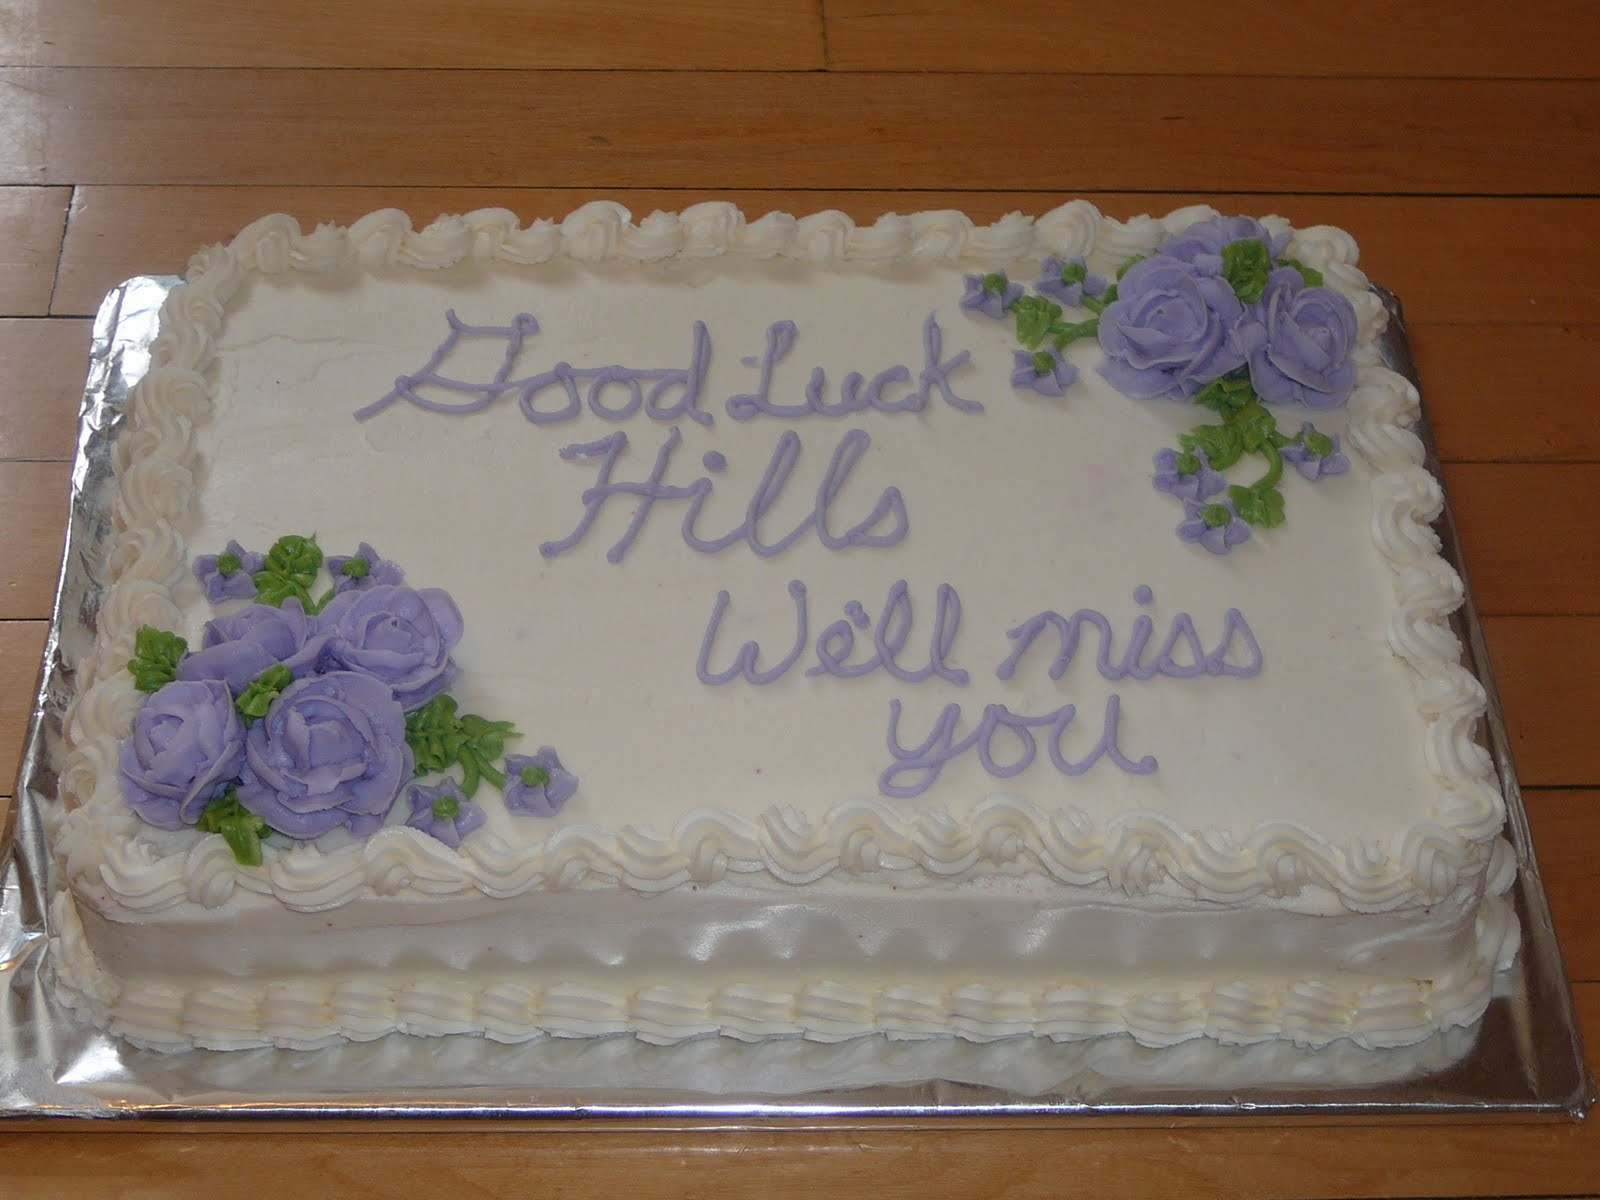 Goodbye Cake Images : Pin Goodbye Cake Cakes Cake on Pinterest